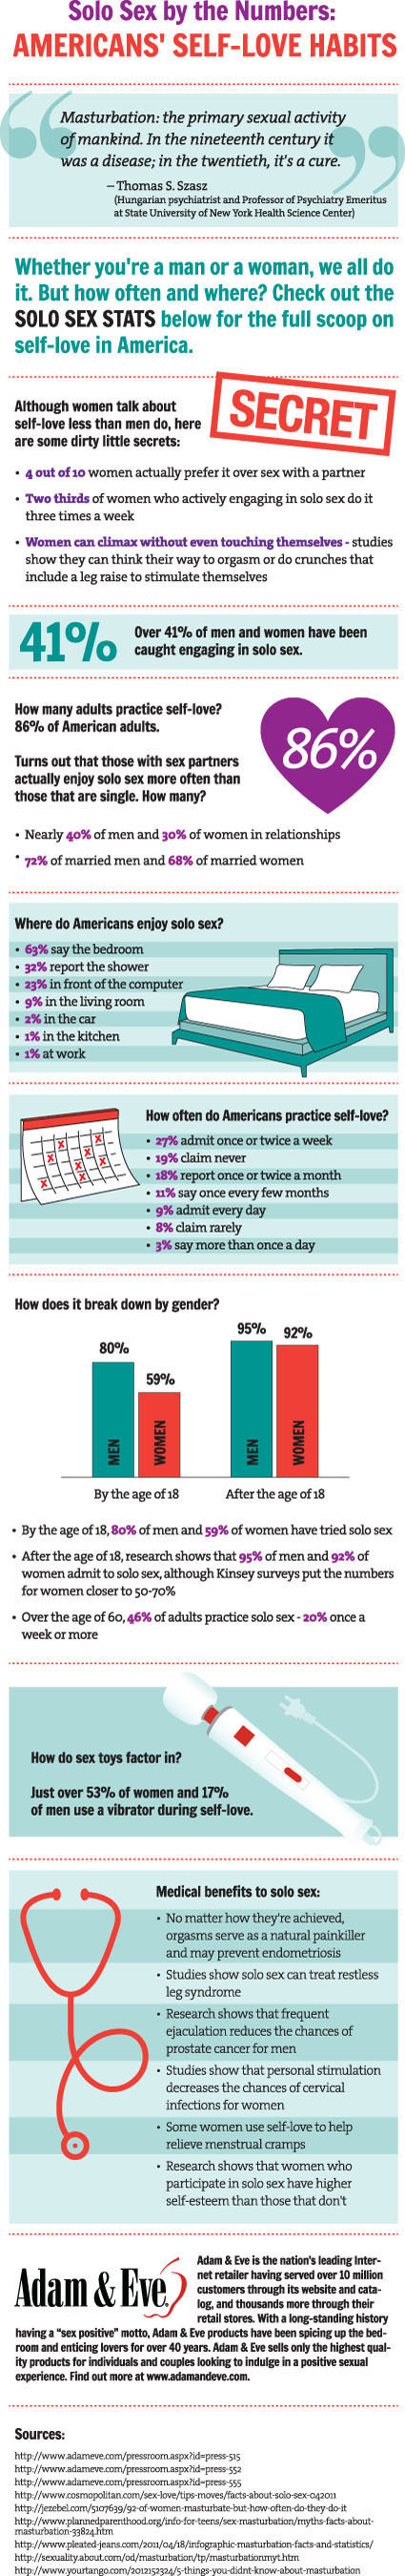 "ADAMANDEVE.COM REVEALS STATISTICS ON ""SELF-LOVE"".  (PRNewsFoto/AdamAndEve.com)"